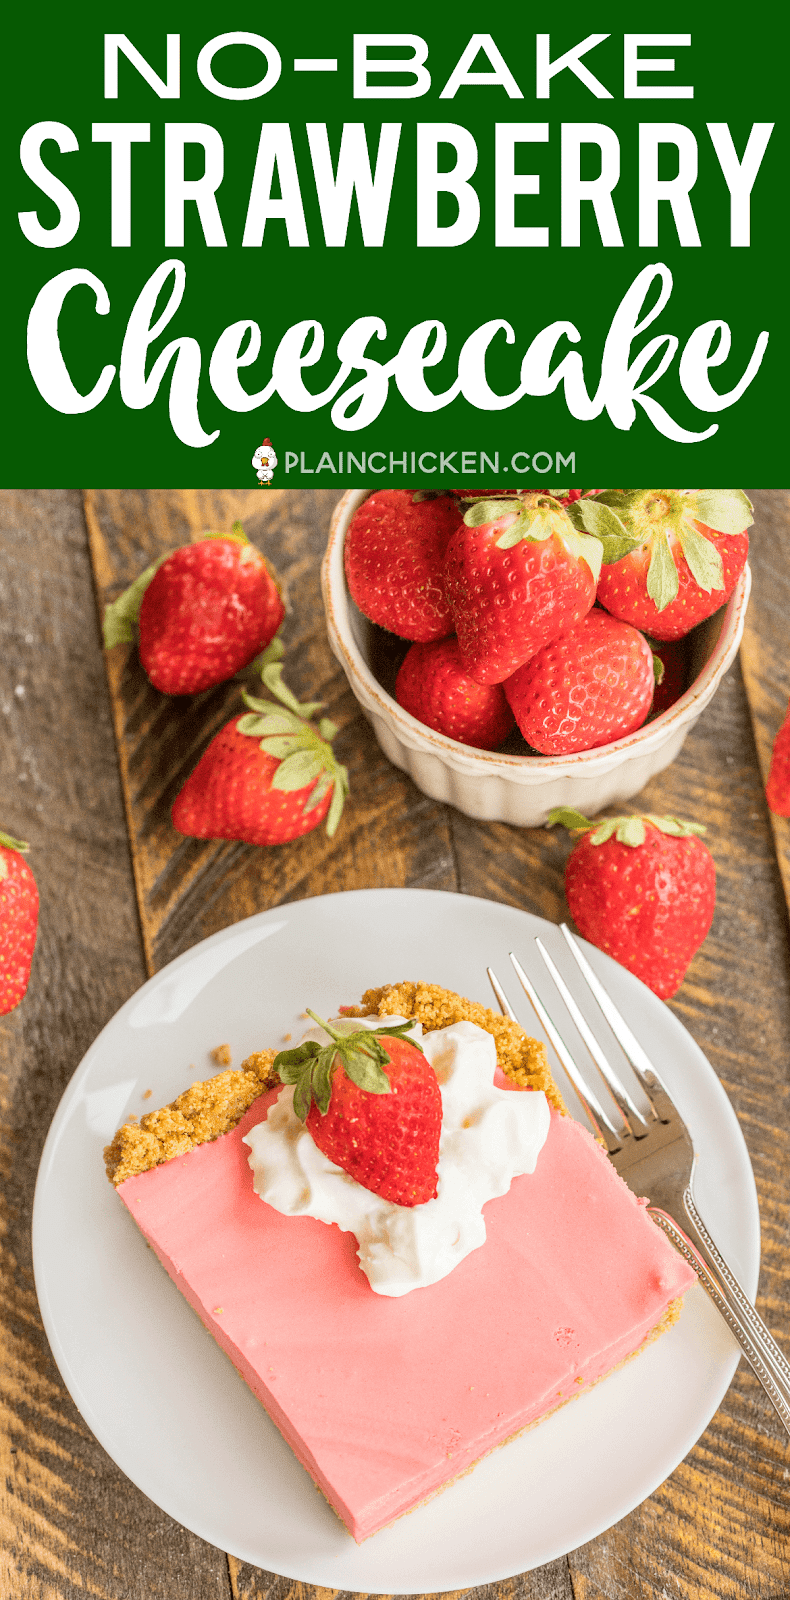 No-Bake Strawberry Cheesecake Recipe - graham cracker crust, light and fluffy no-bake cheesecake - SO good. Seriously, THE BEST no-bake cheesecake EVER! Great with whipped cream and fresh strawberries. Strawberry jello, boiling water, strawberry juice, cream cheese, sugar, vanilla, evaporated milk, graham cracker crumbs, butter. Seriously delicious! Great make ahead dessert recipe for a crowd! #cheesecake #nobakedessert #dessert